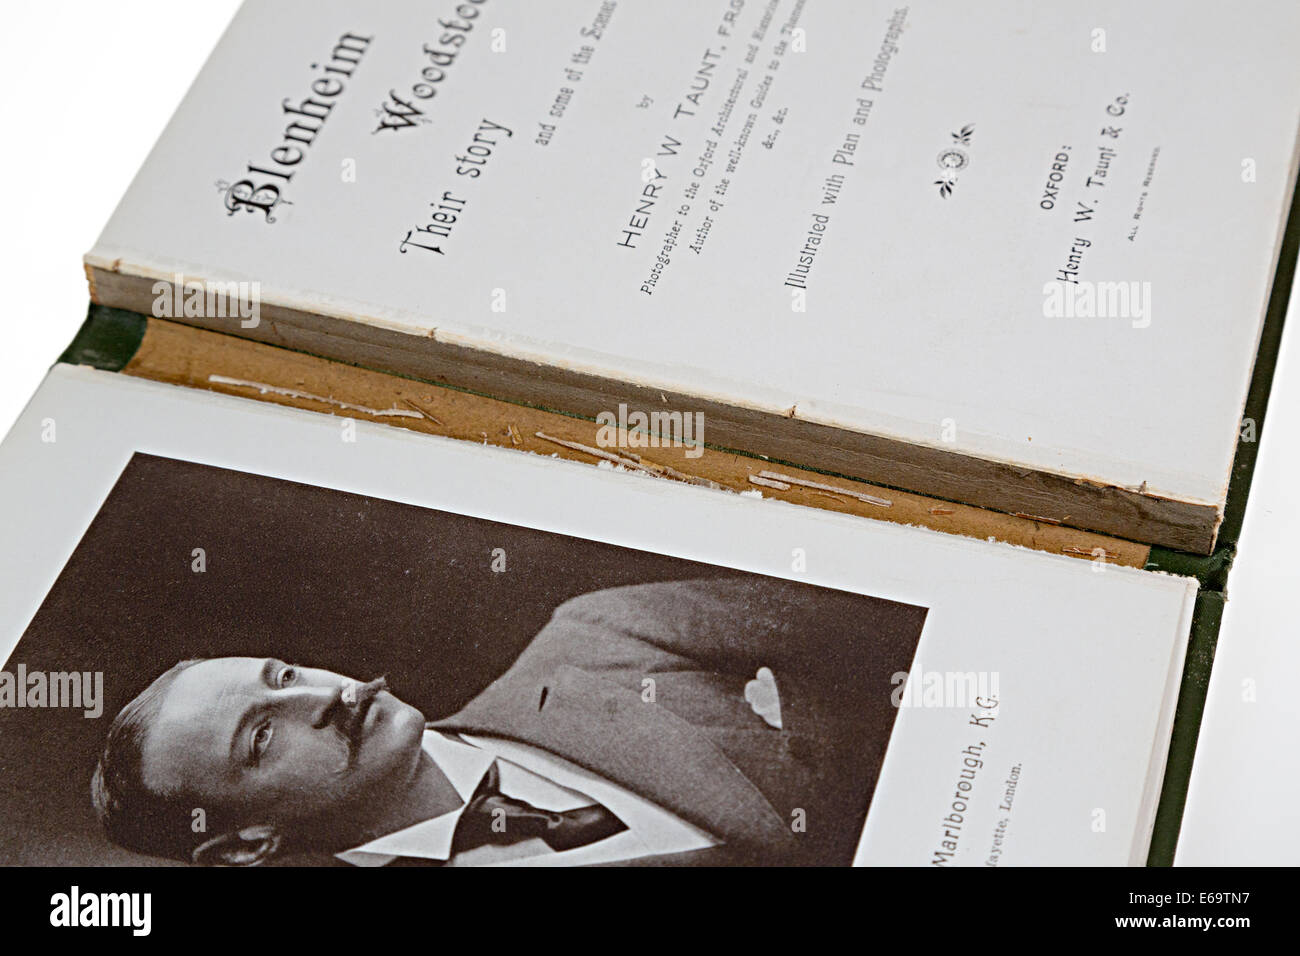 Antiquarian book with damaged spine - Stock Image